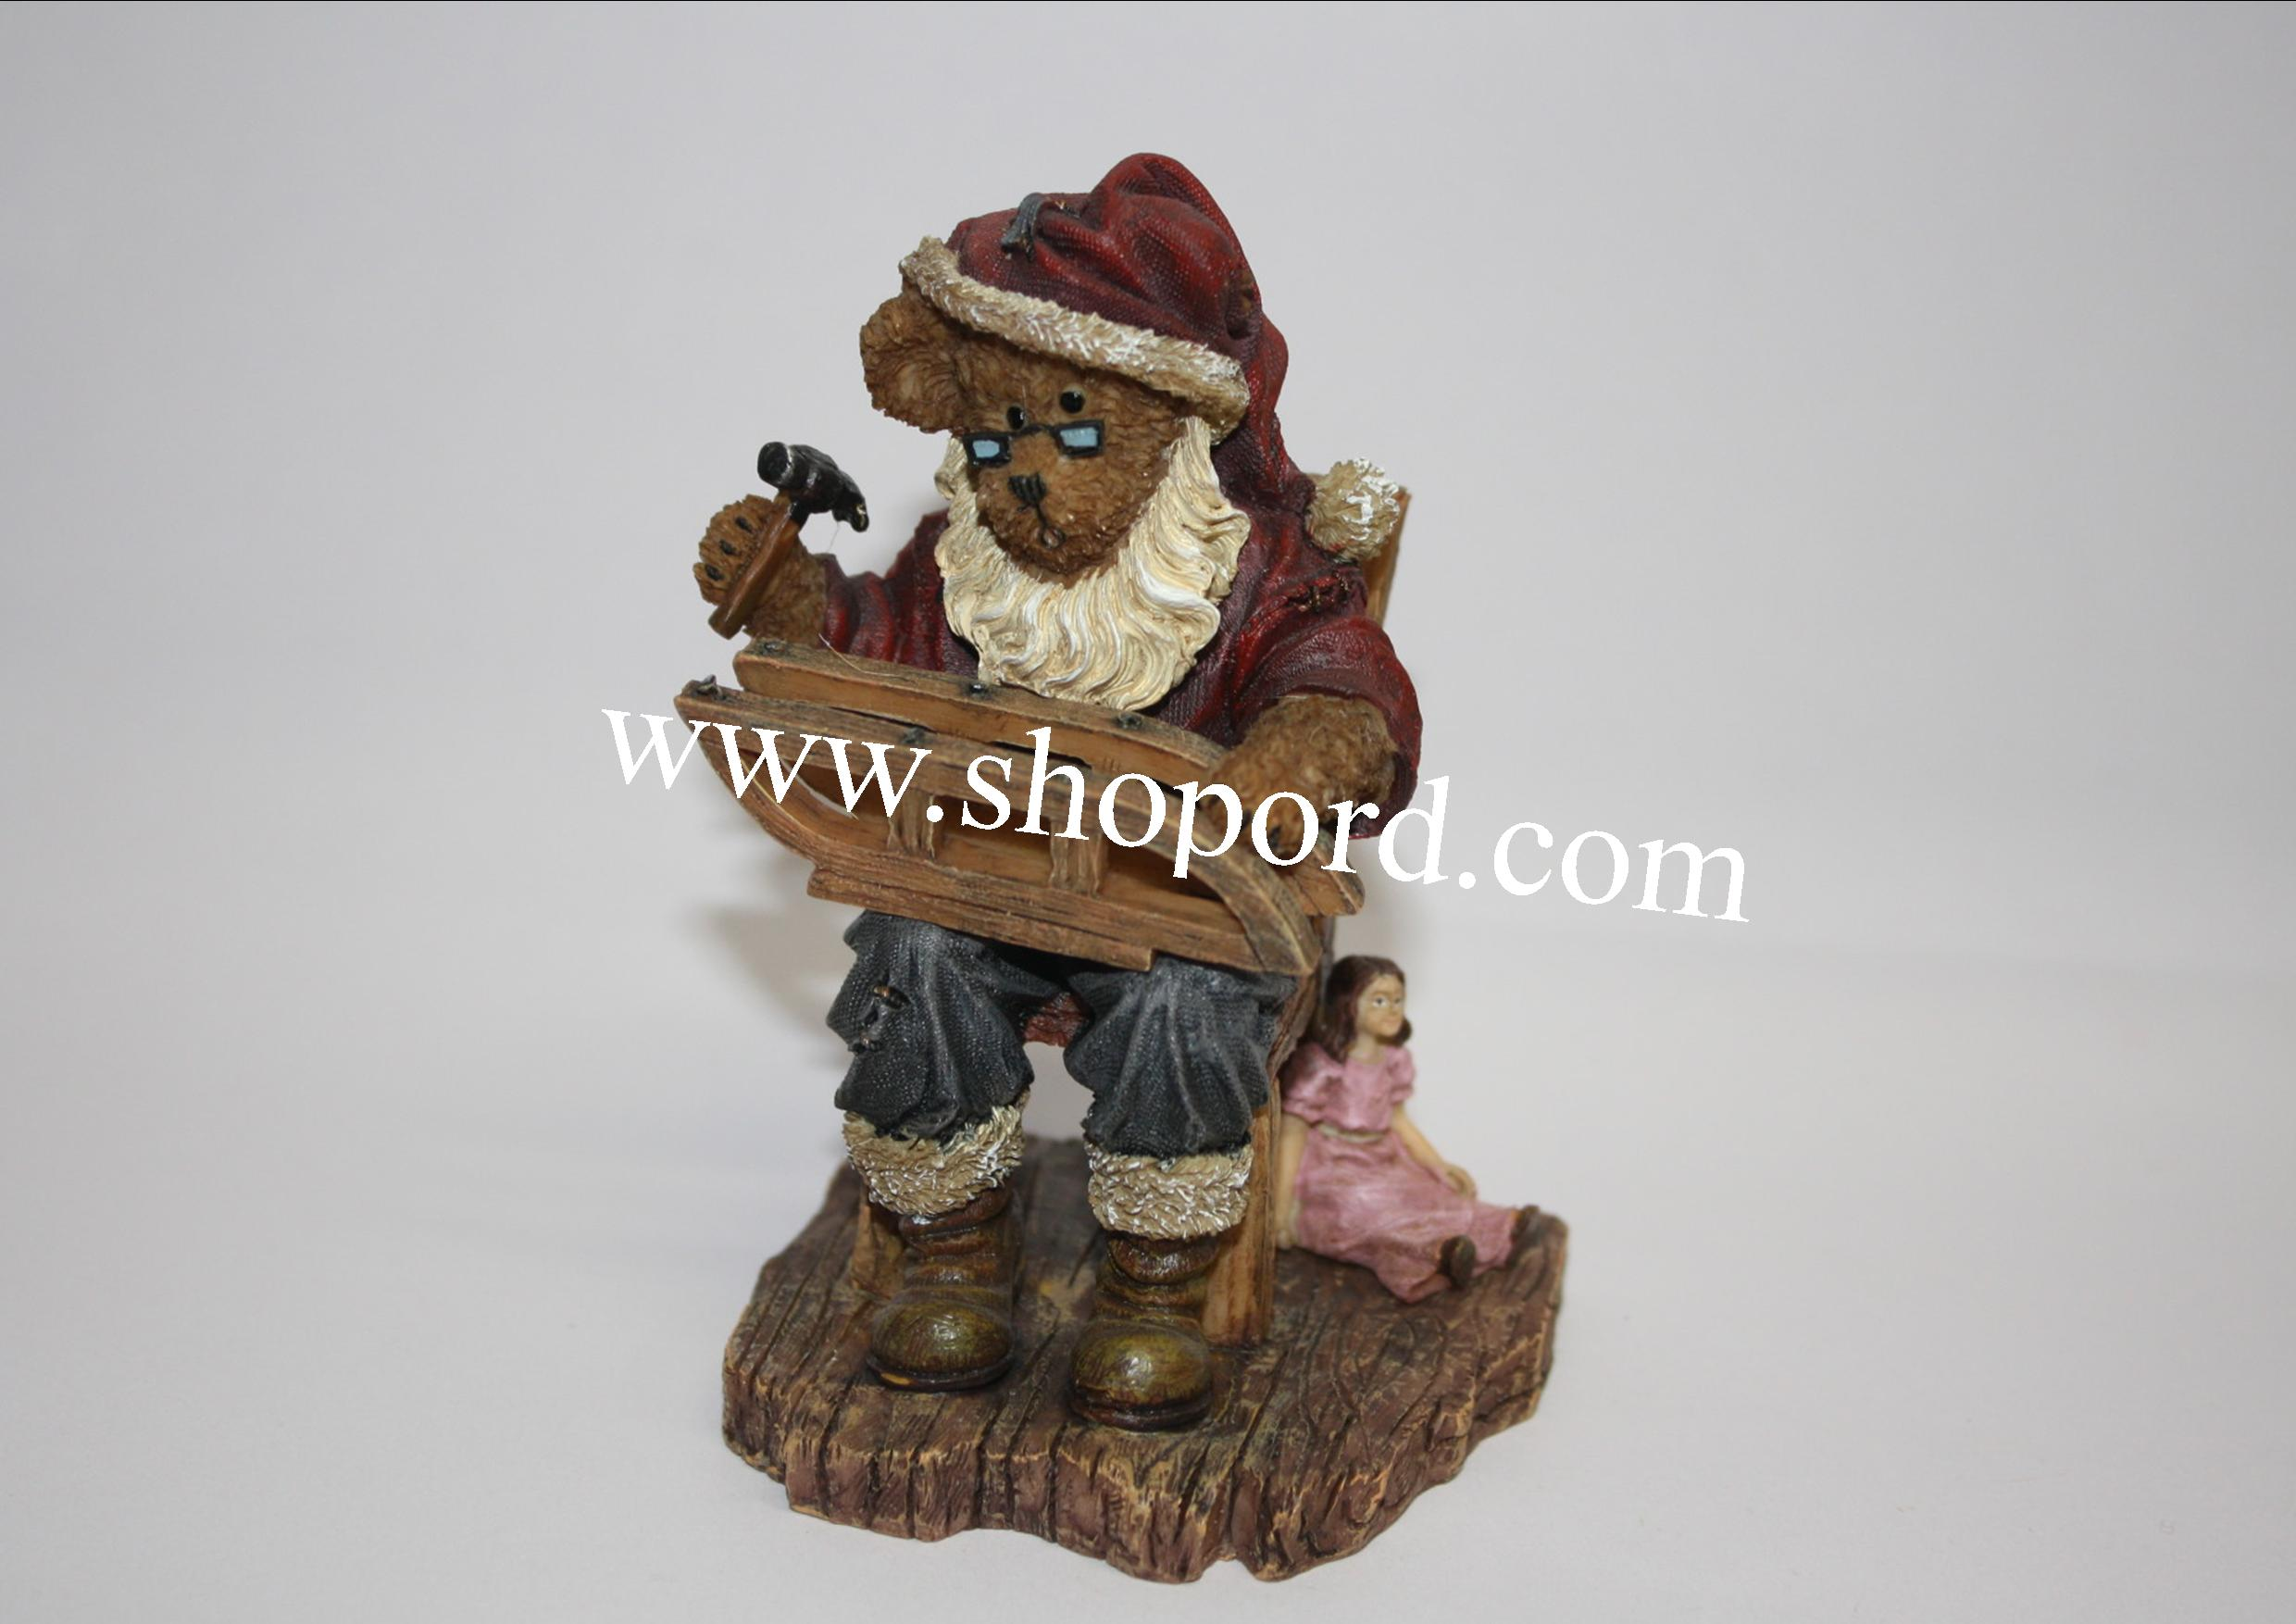 Boyds The Bearstone Collection - Kringlebeary Claus (North Pole Repair Shop) #4022276